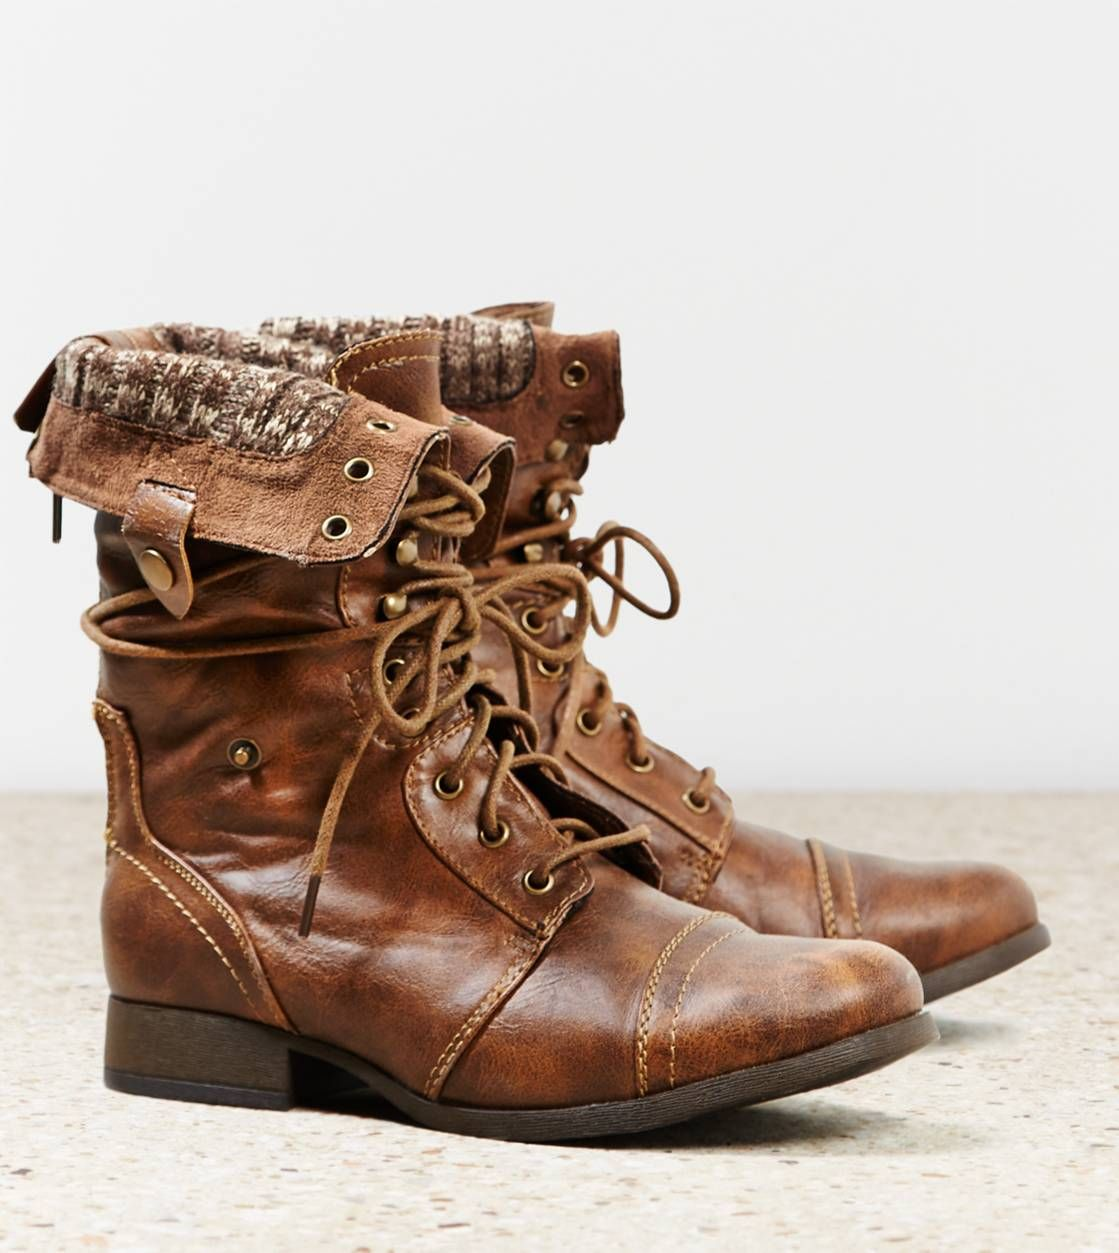 d8ce519b18b American Eagle Outfitters Lace-Up Boot  70. Fold down combat boots. Less  expensive knock off of Steve Maddens  Cablee  Boot.